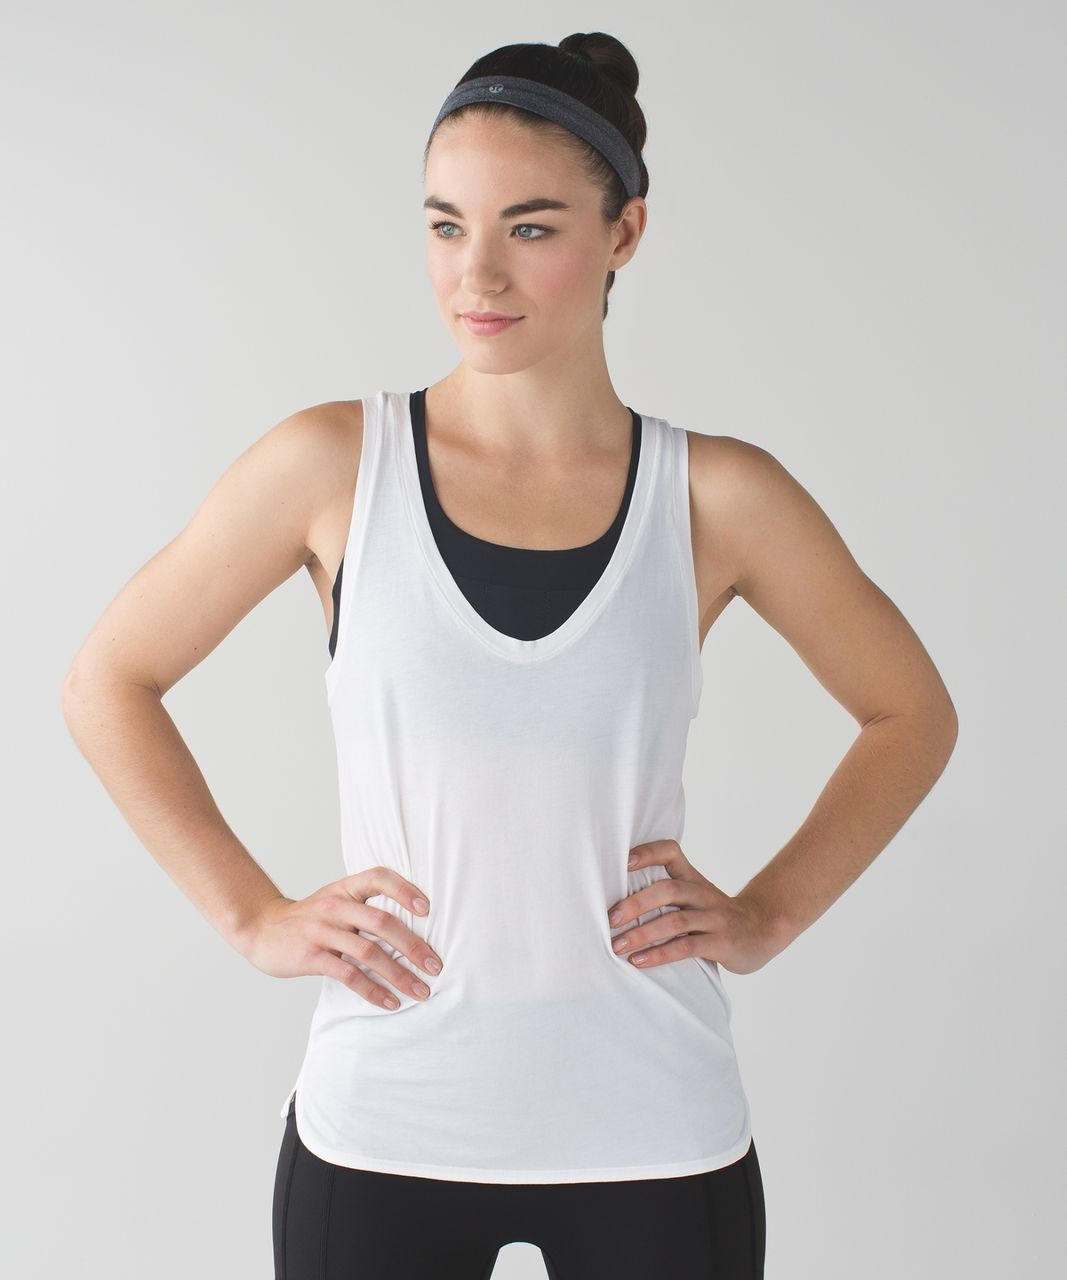 Lululemon Cardio Cross Trainer Headband - Heathered Black